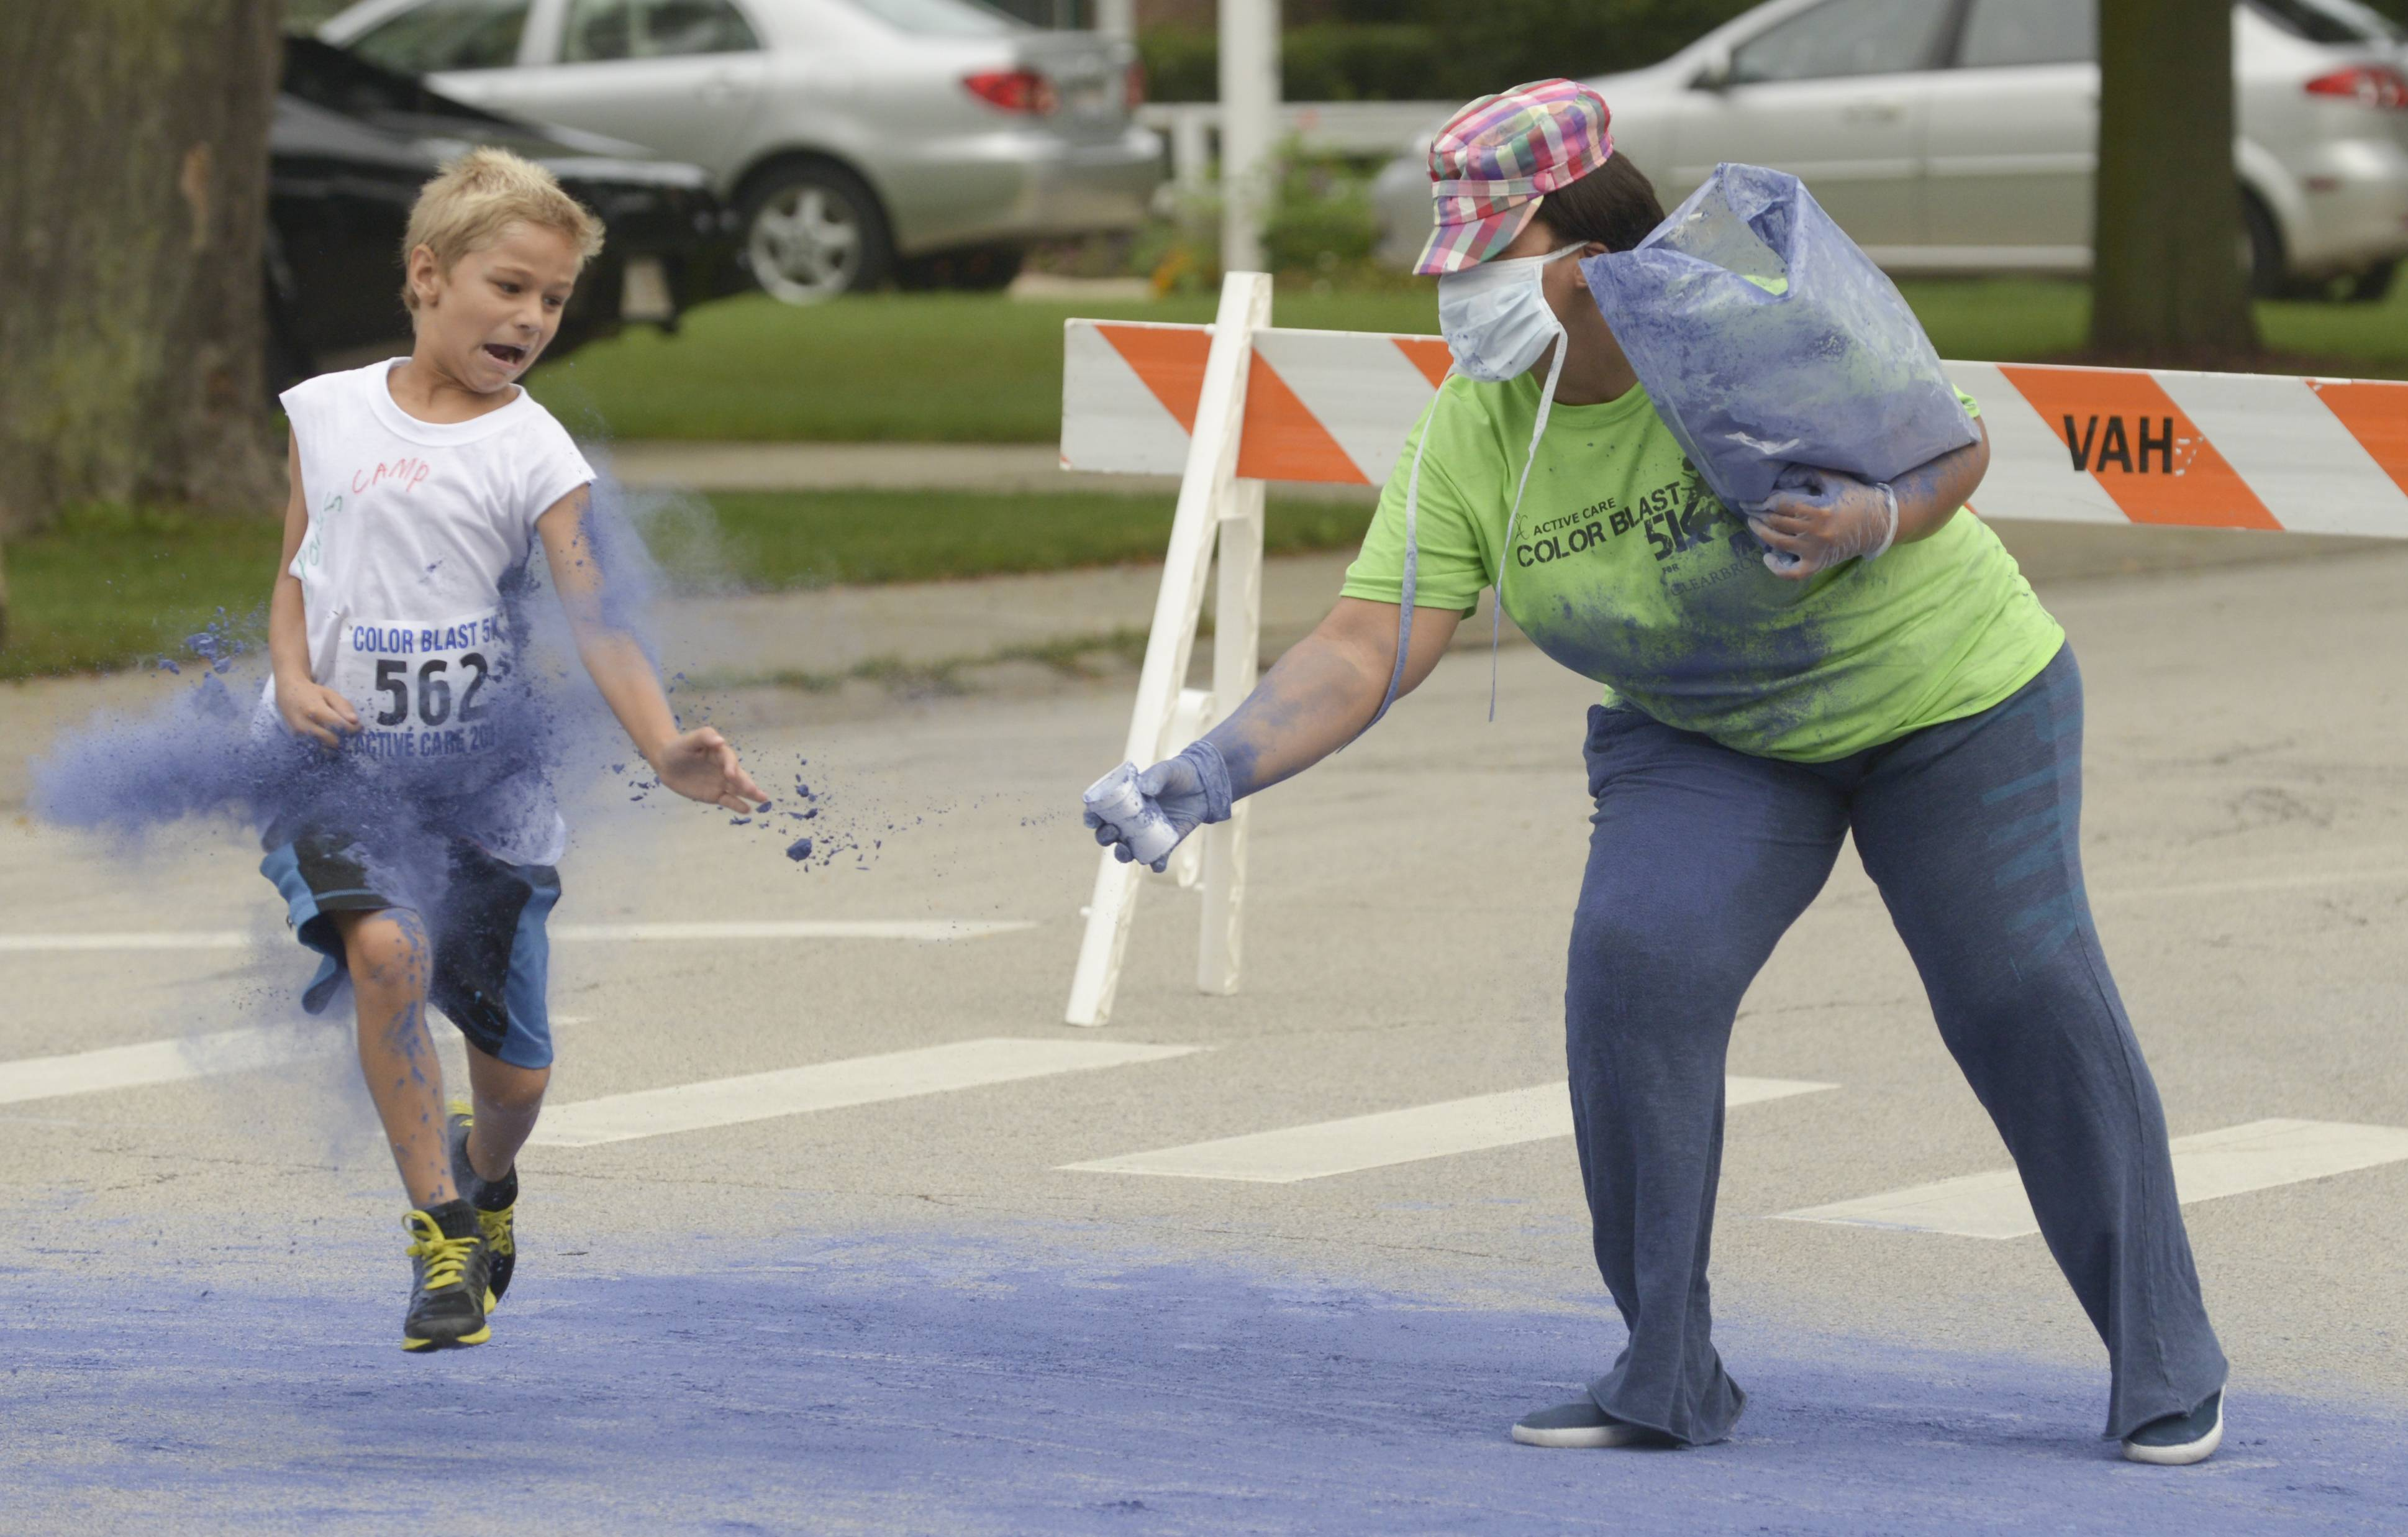 Darsheta Epting of Oak Park tosses blue colored cornstarch powder on a young runner who tries to avoid the toss Saturday during the 2nd annual Active Care ColorBlast 5K in Arlington Heights to support Clearbrook.